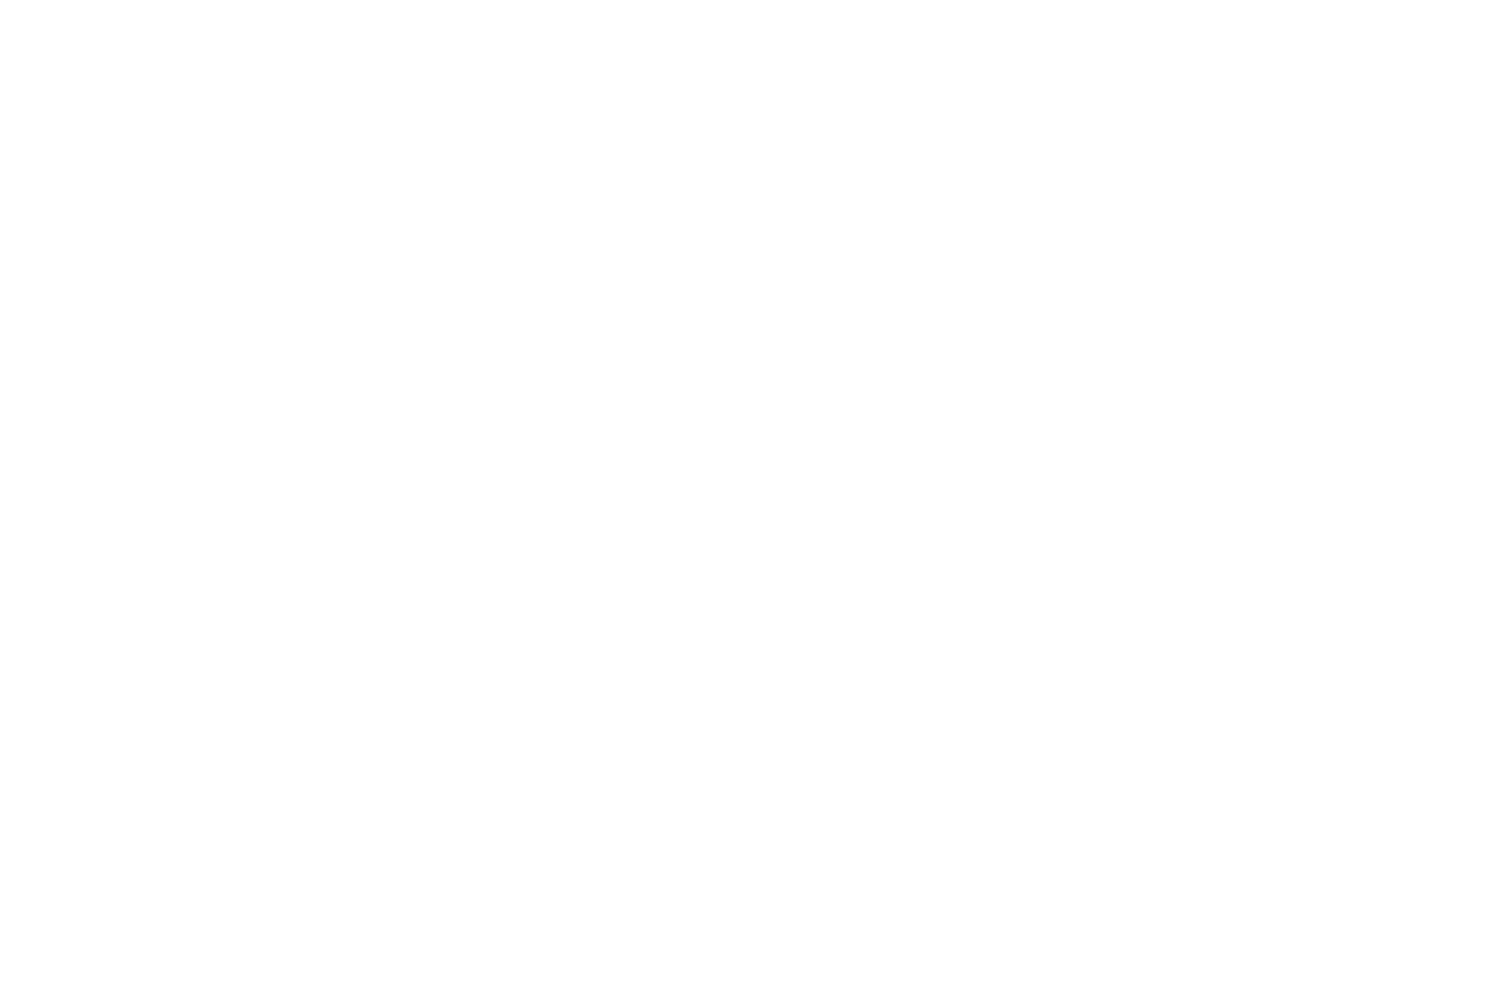 Winnipeg Wedding Photographer Michael Scorr